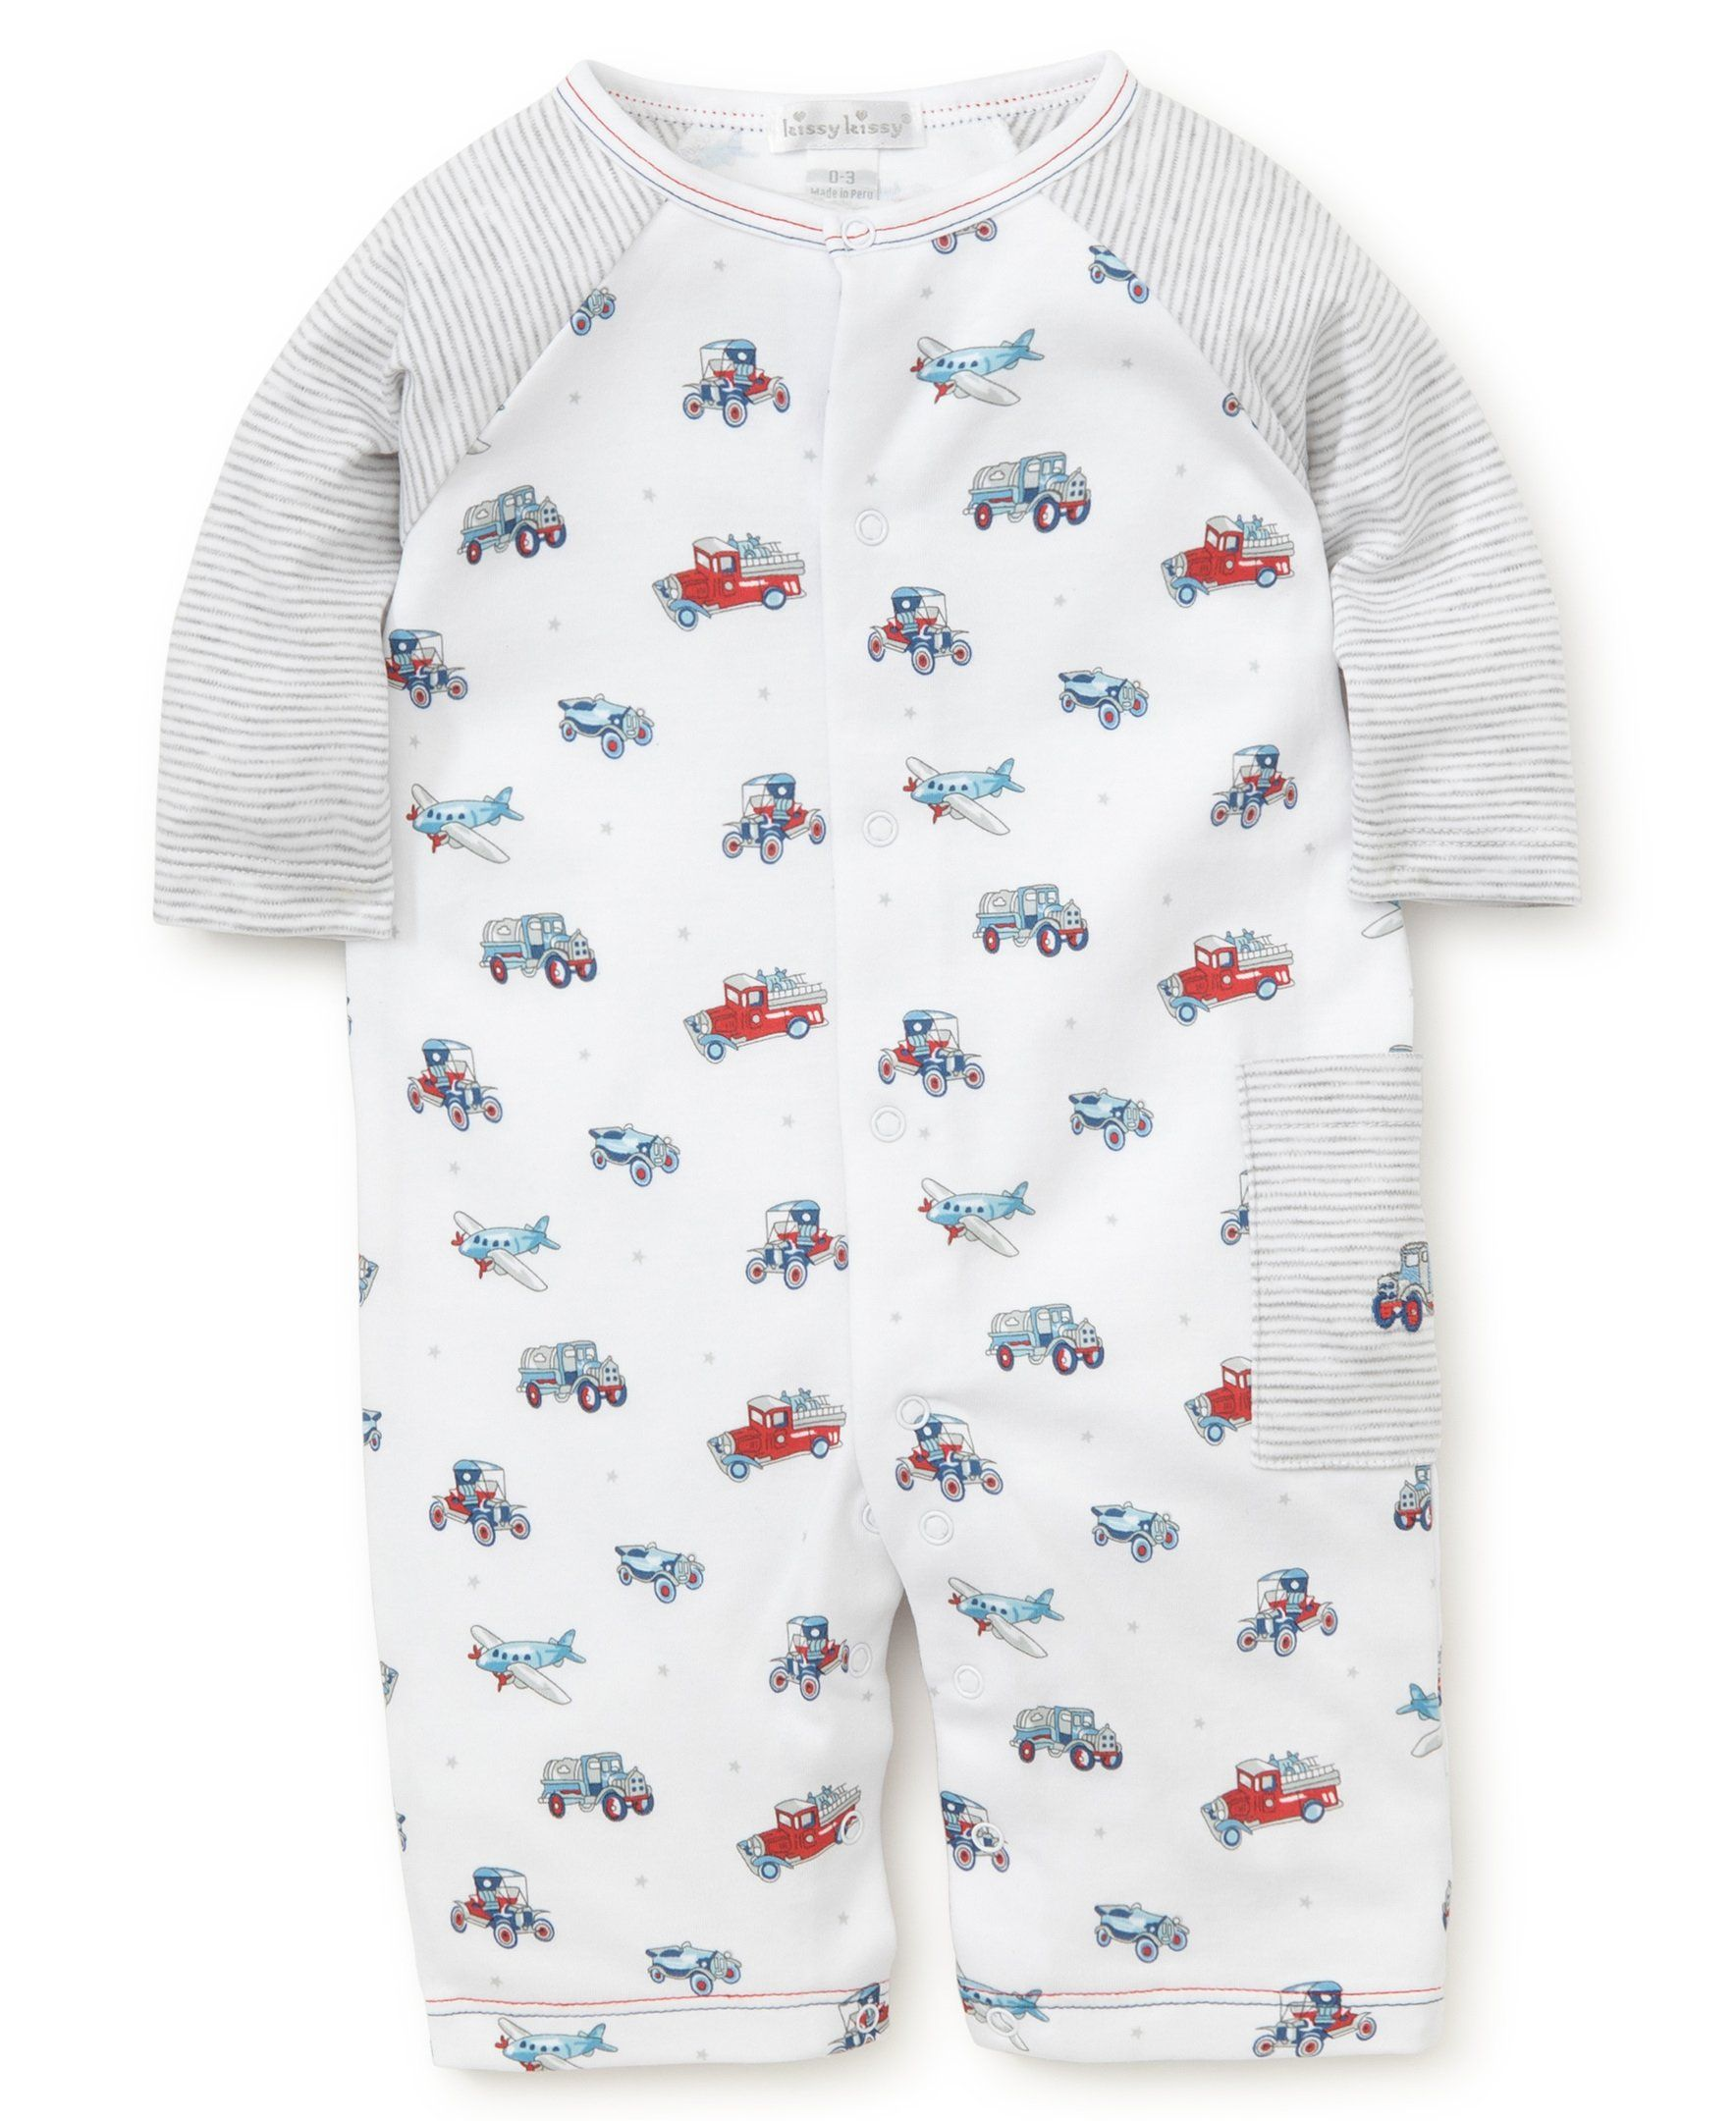 Kissy Kissy Babyboys Infant Classics Print Playsuitmulticolored69 Months Click Image For More Information Little Boy Outfits Boy Outfits Baby Boy Outfits